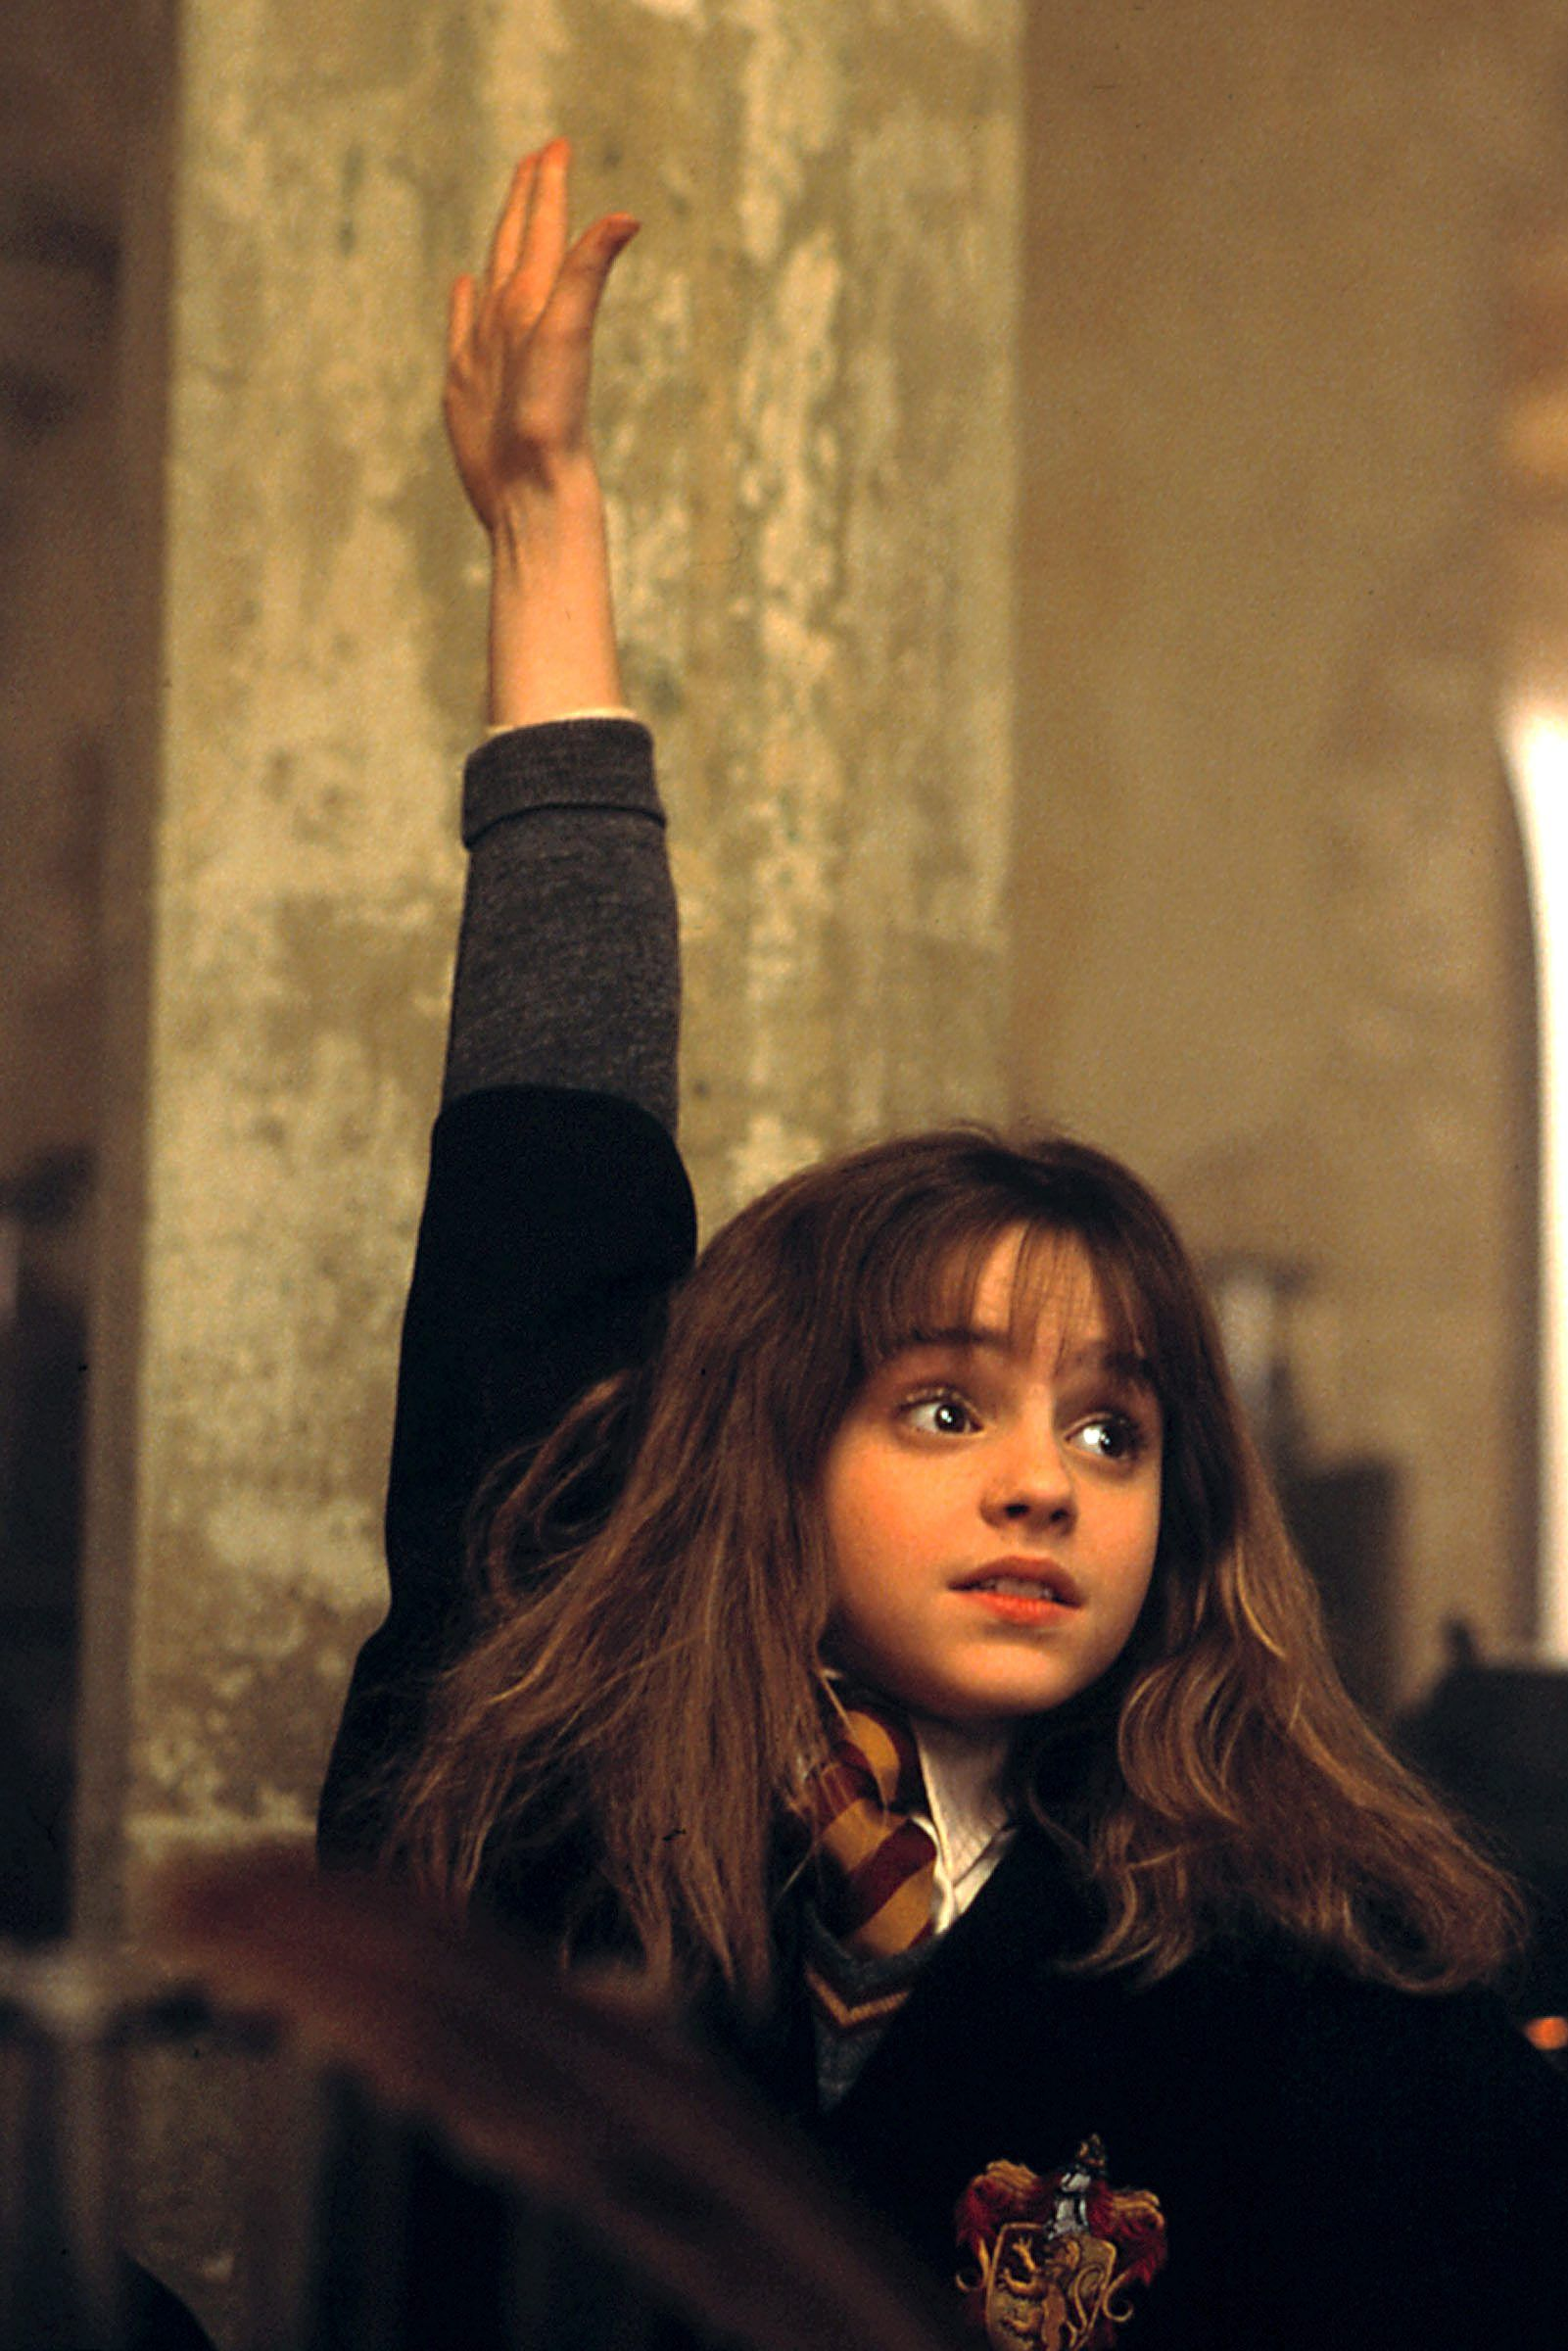 Harry Potter Quiz: How Well Do You Know Hermione Granger?